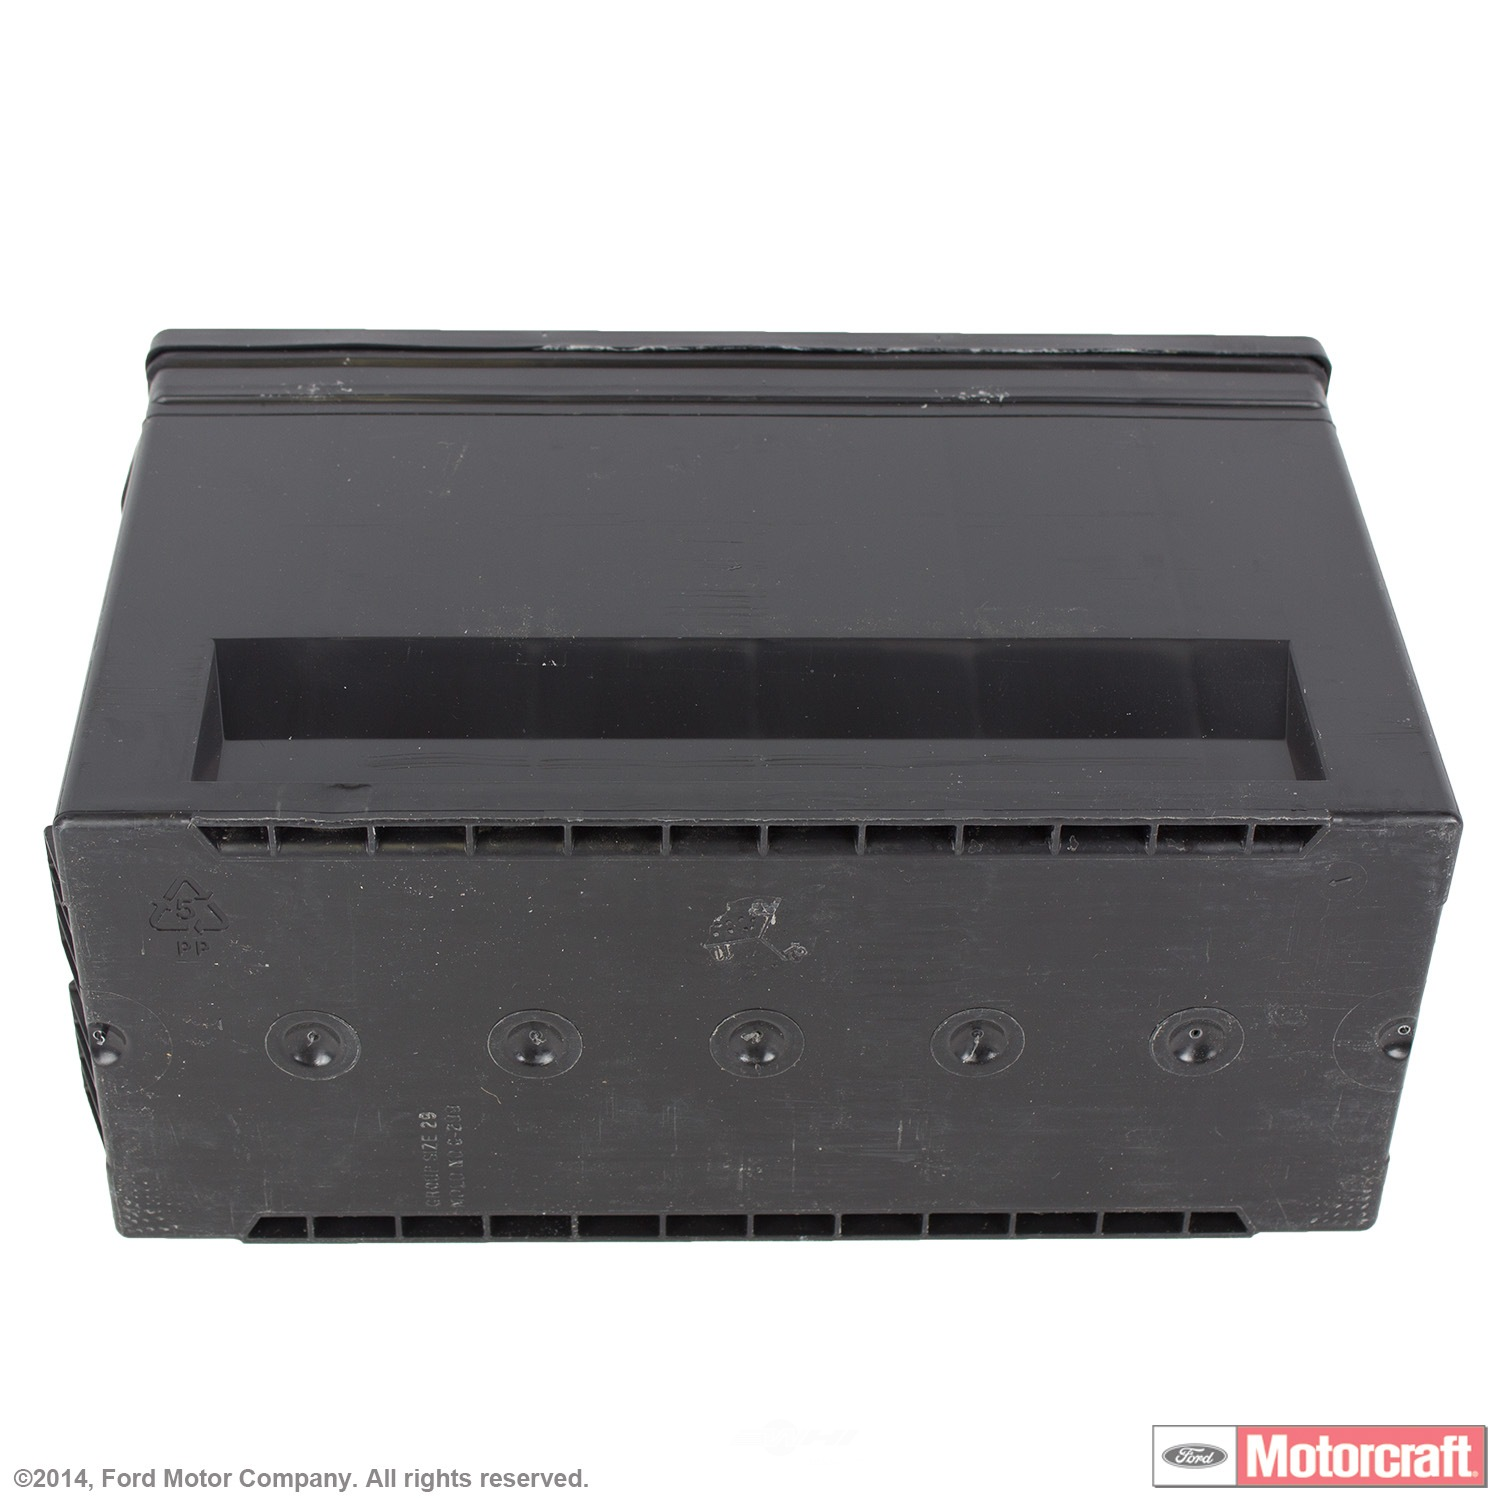 battery tested tough max motorcraft fits 92 96 ford e 350. Black Bedroom Furniture Sets. Home Design Ideas